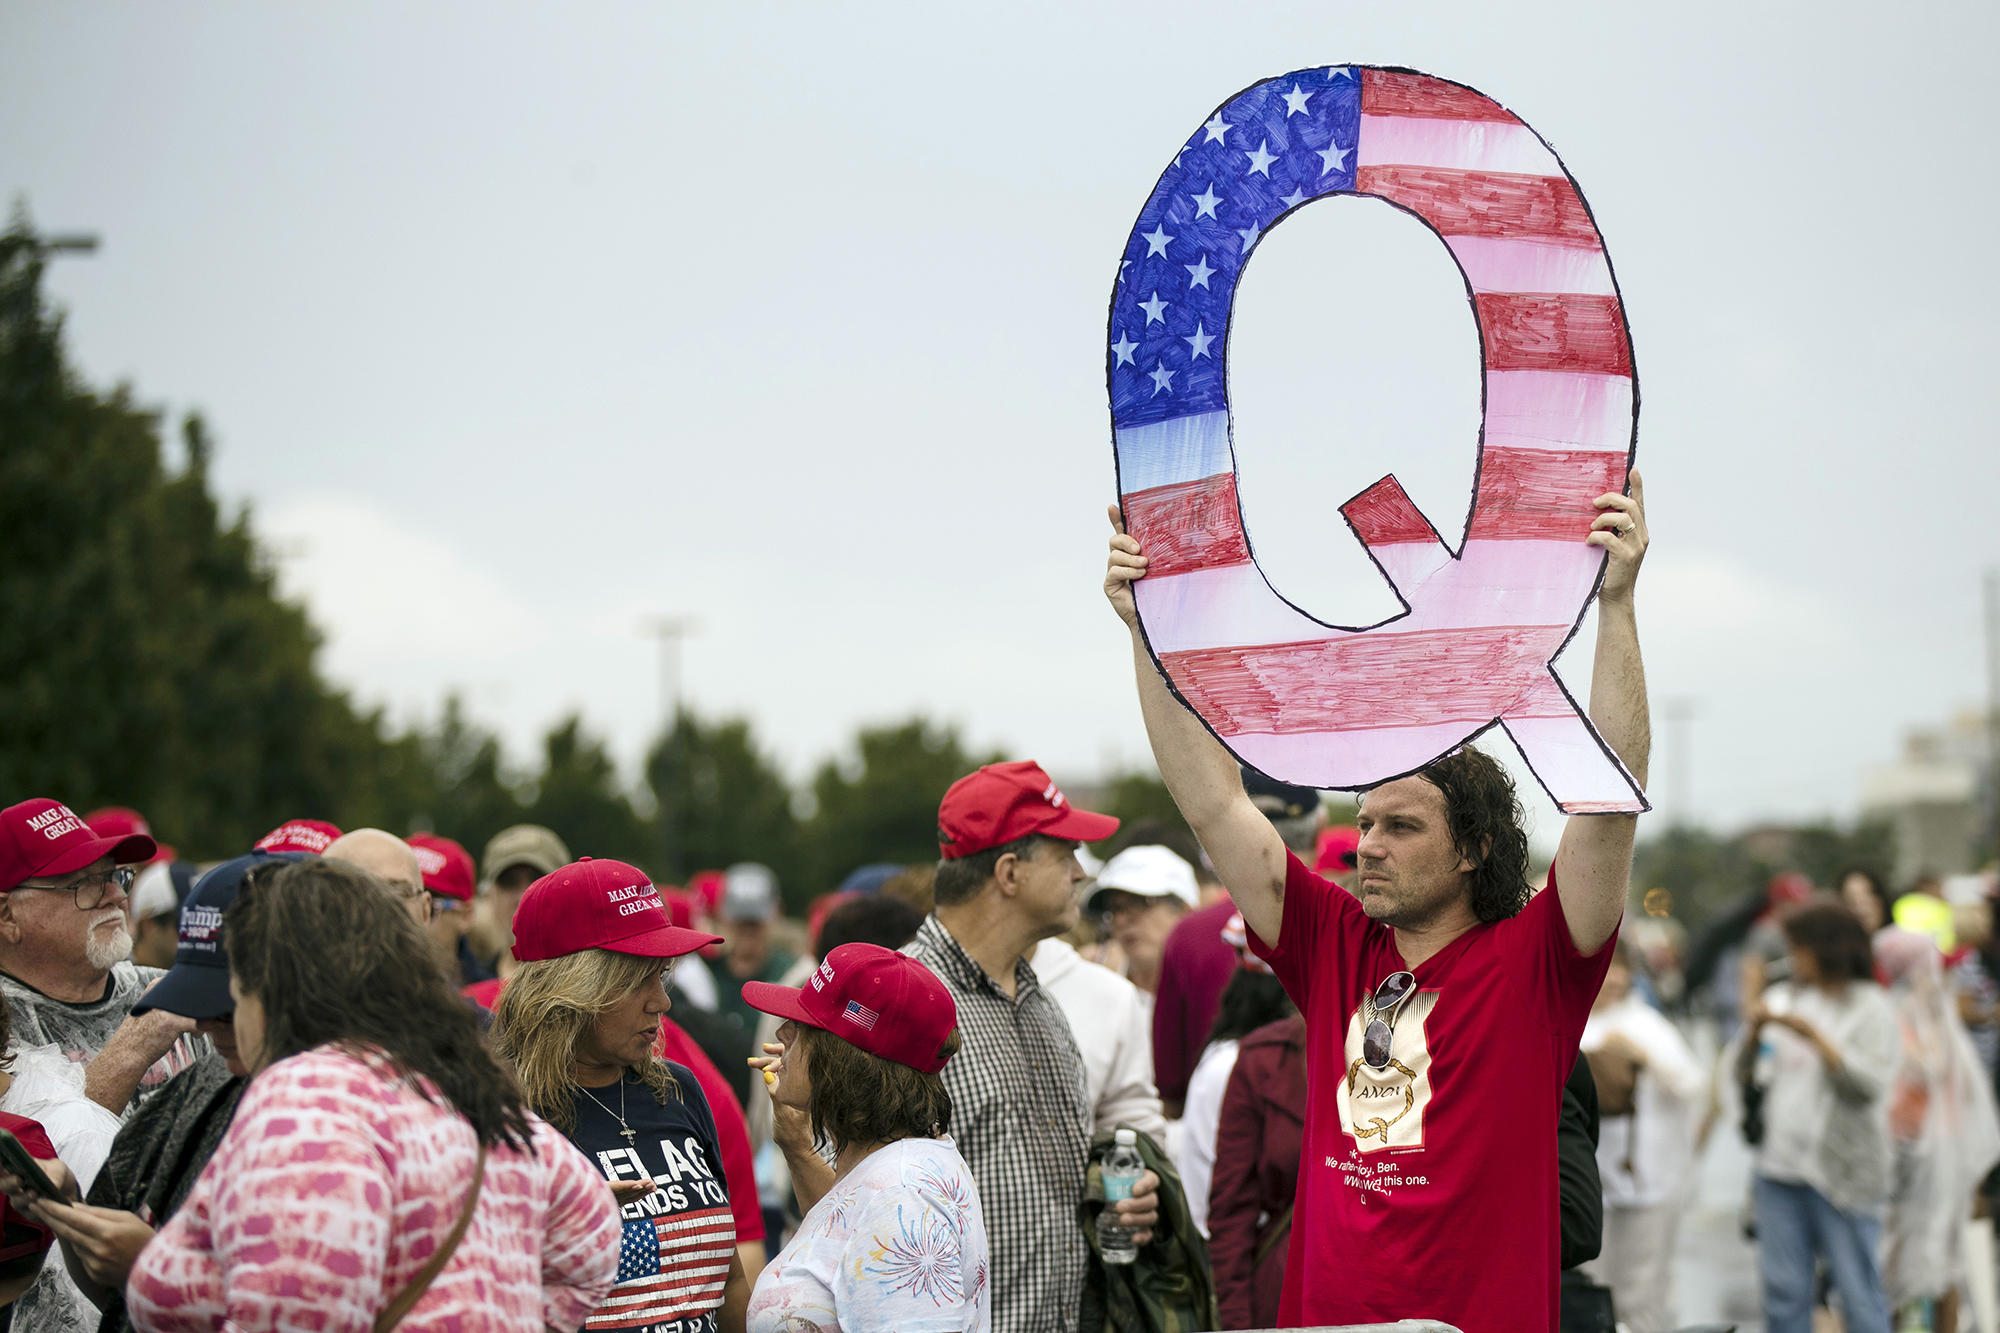 Qanon Conspiracy Theories Have Seeped Into Northwest Politics Crosscut